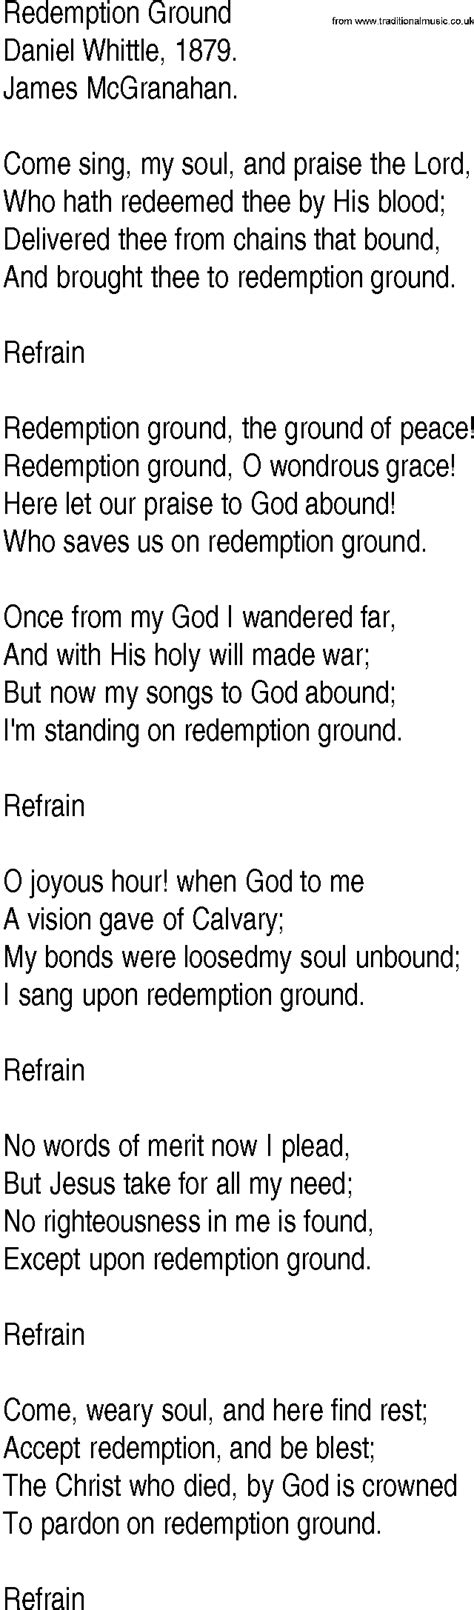 Pdf Song Redemption Chronicles by Hymn And Gospel Song Lyrics For Redemption Ground By